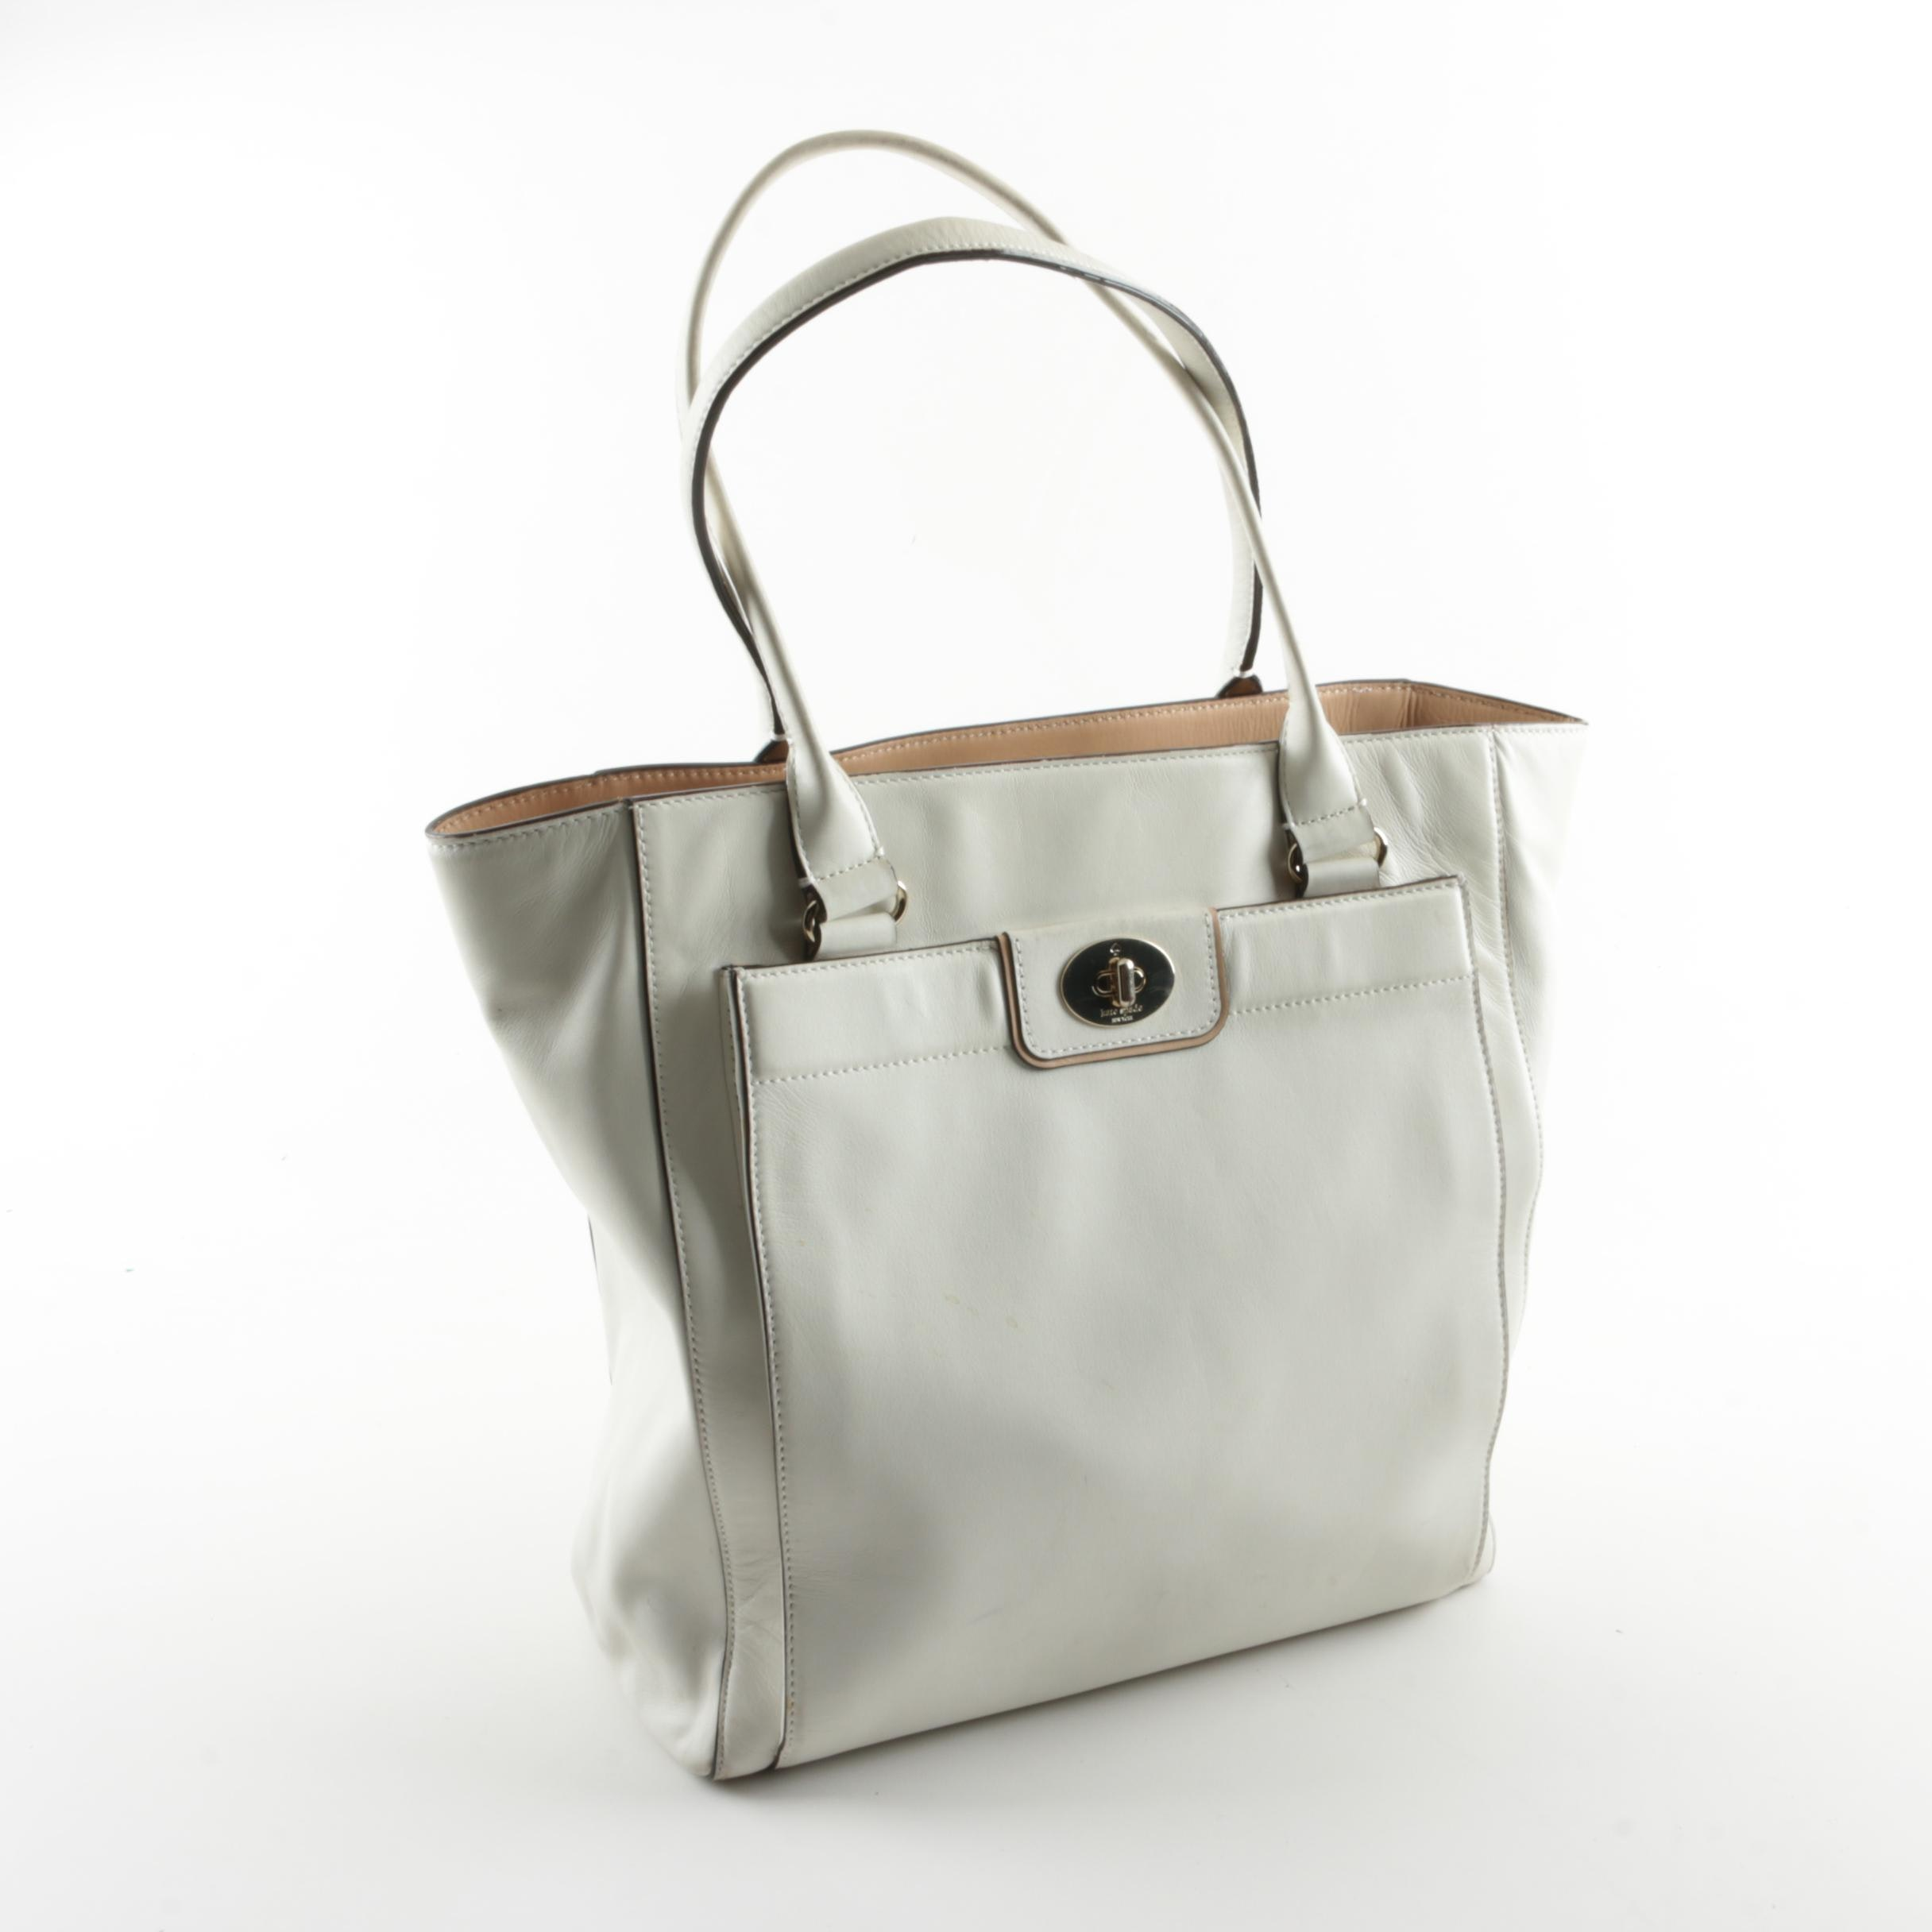 Kate Spade White and Tan Leather Tote